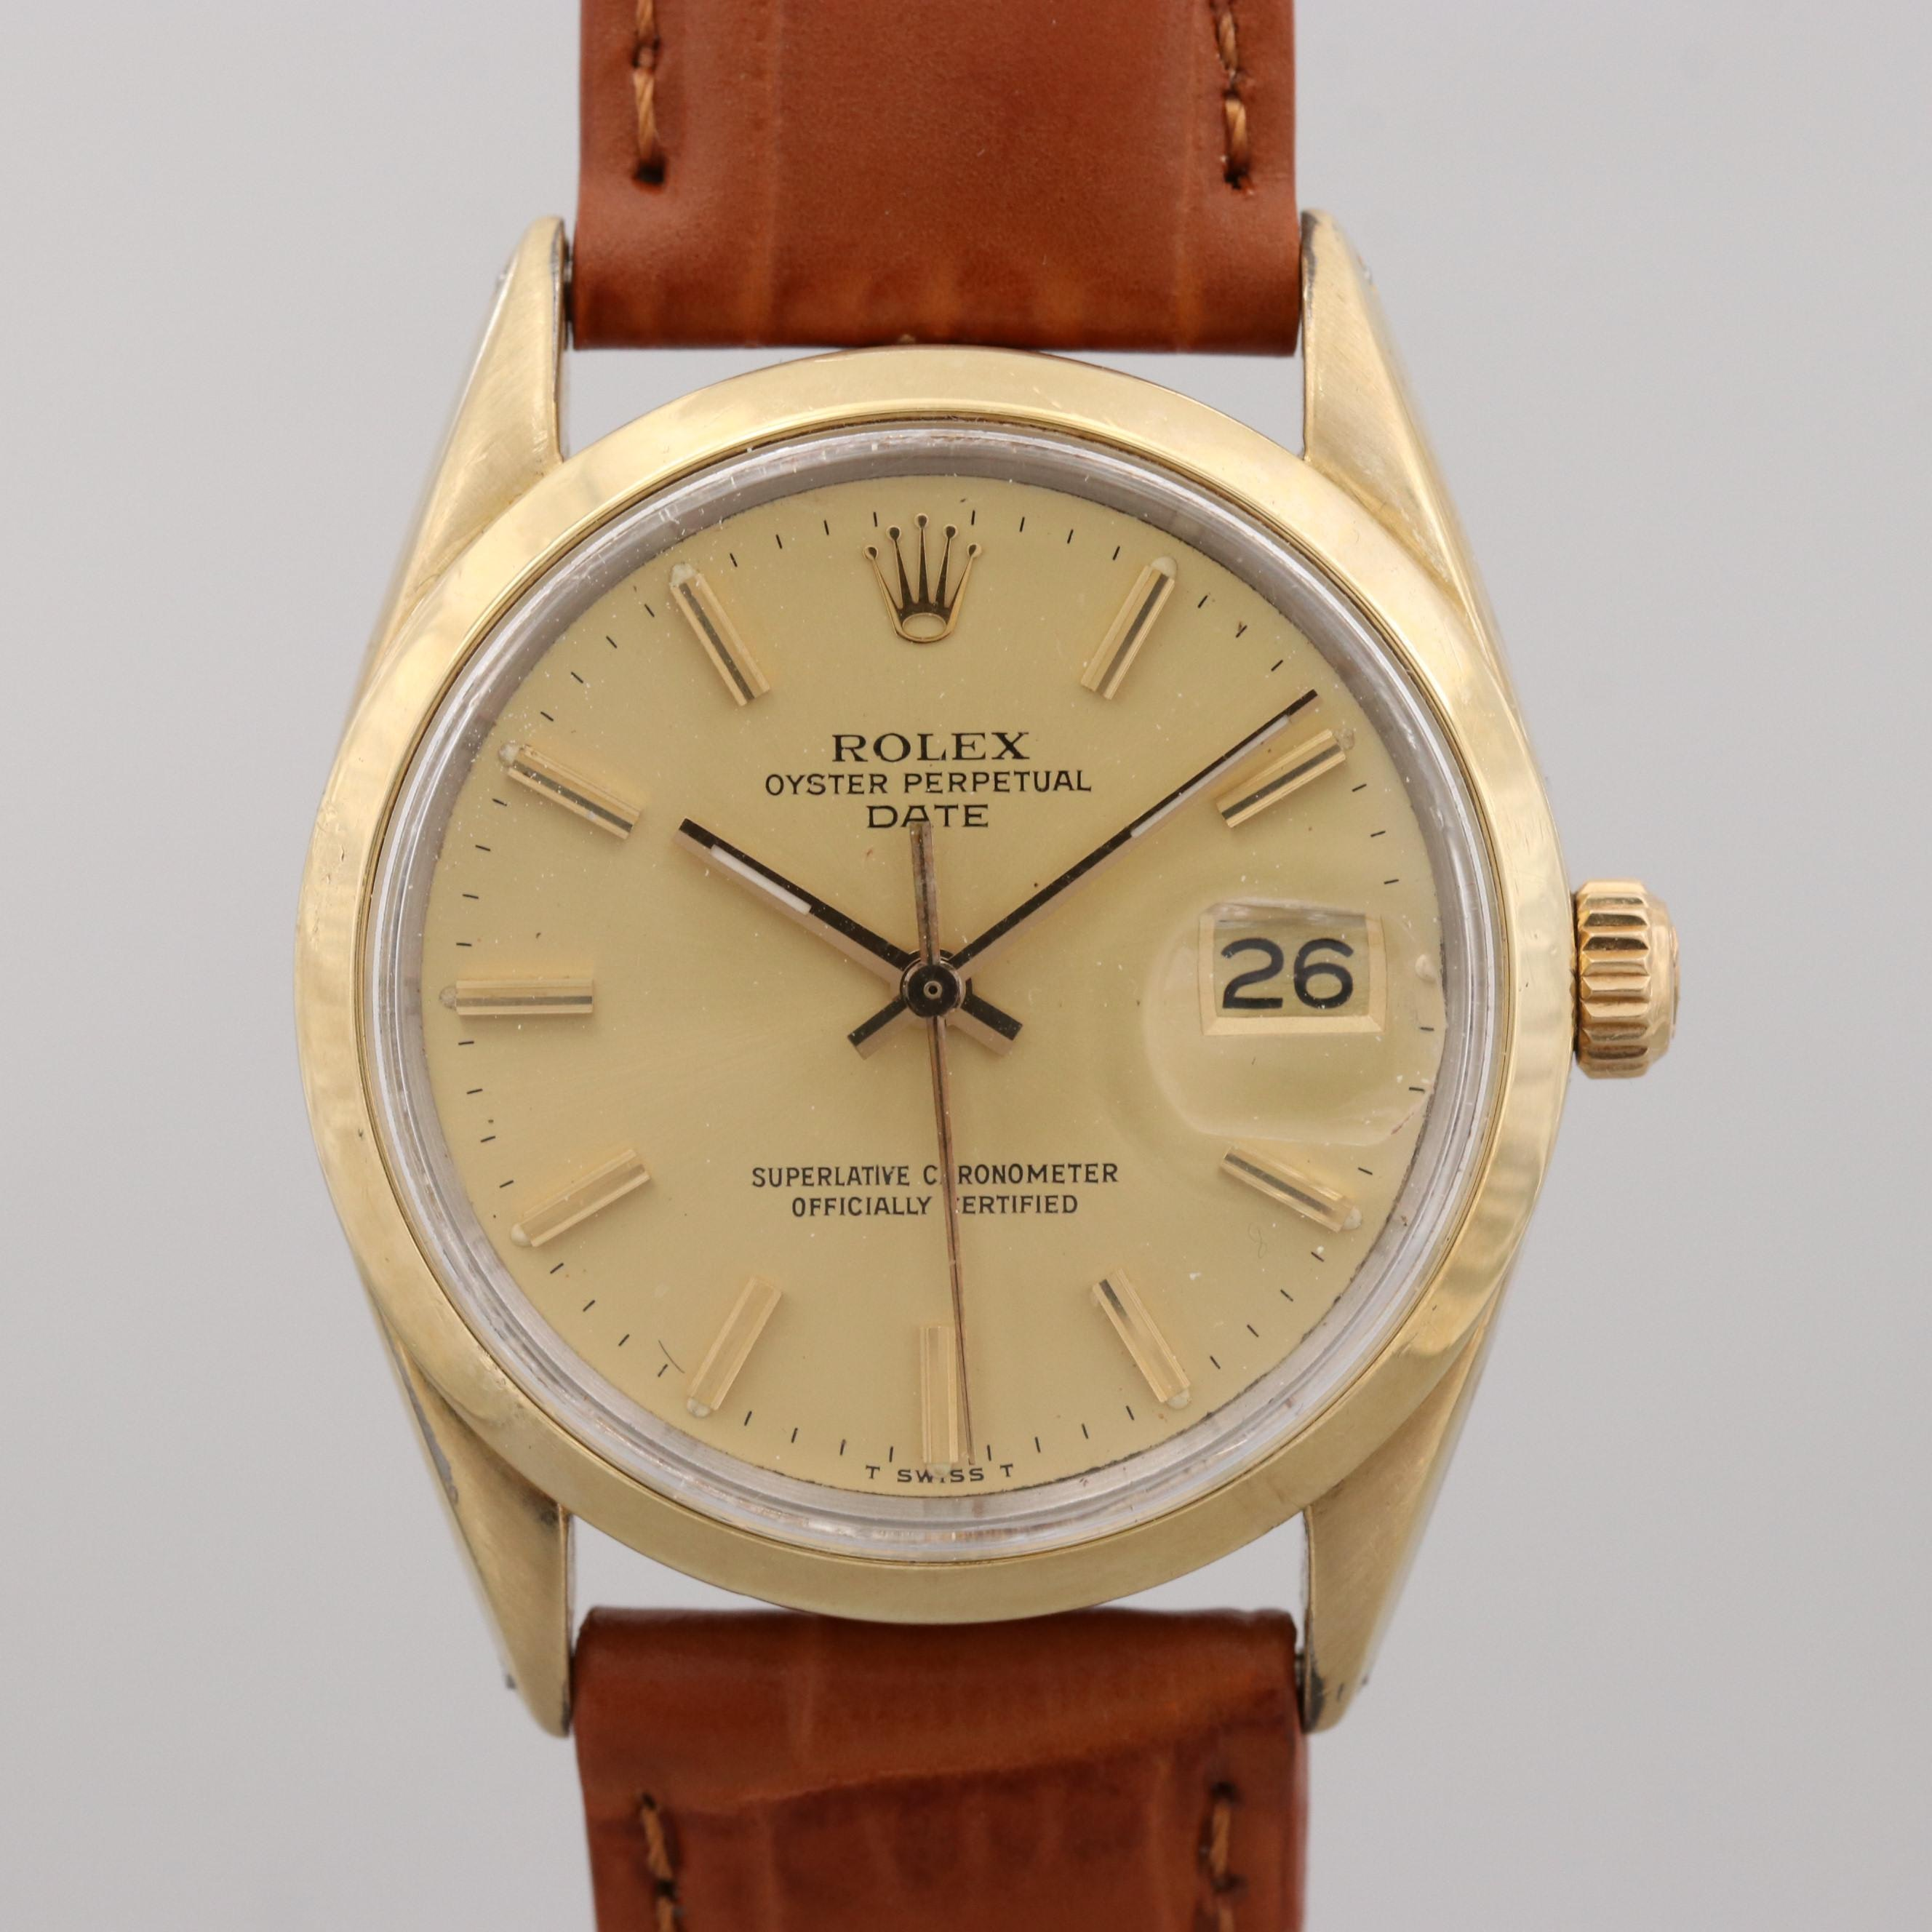 Vintage Rolex Date Gold Shell Wristwatch, 1978